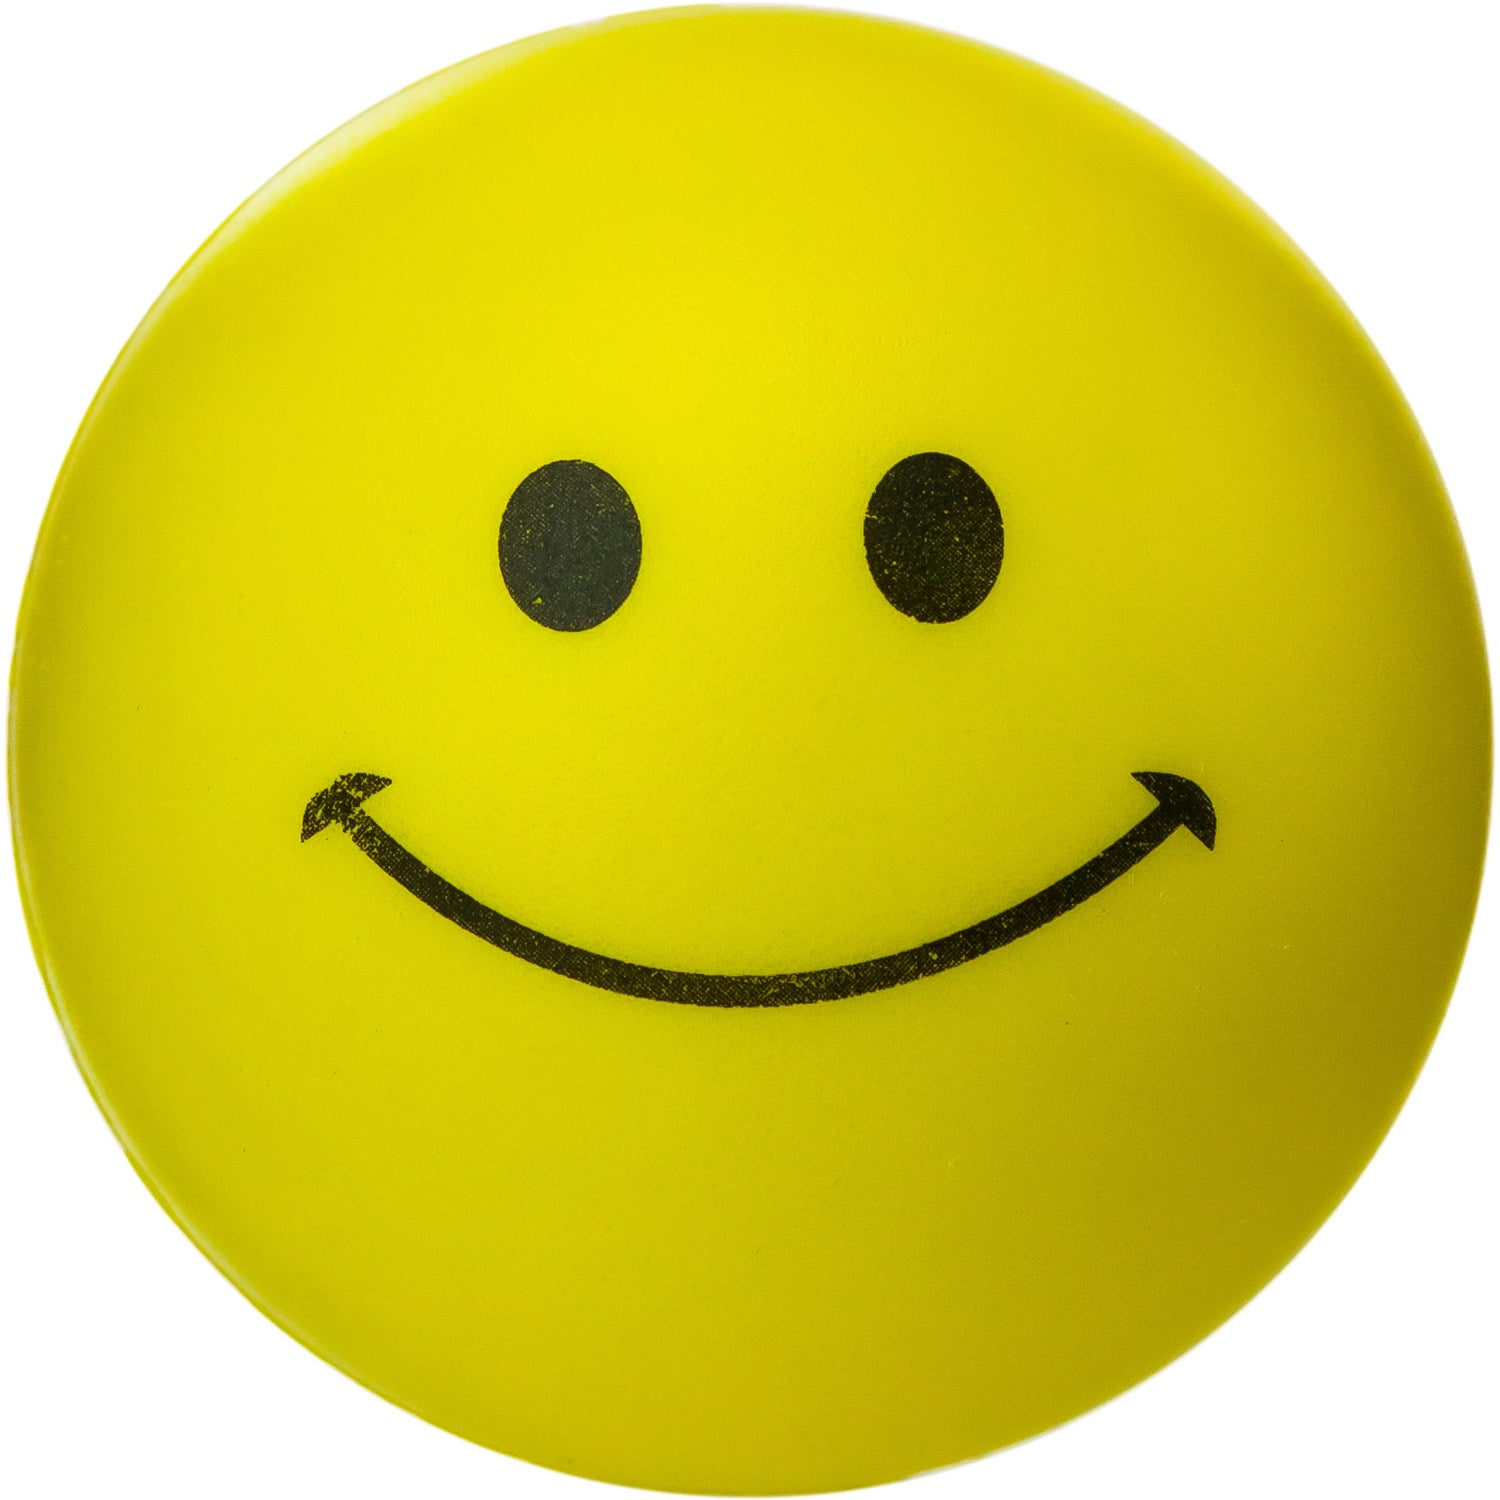 promotional smiley face stress relievers with custom logo for 1 08 ea